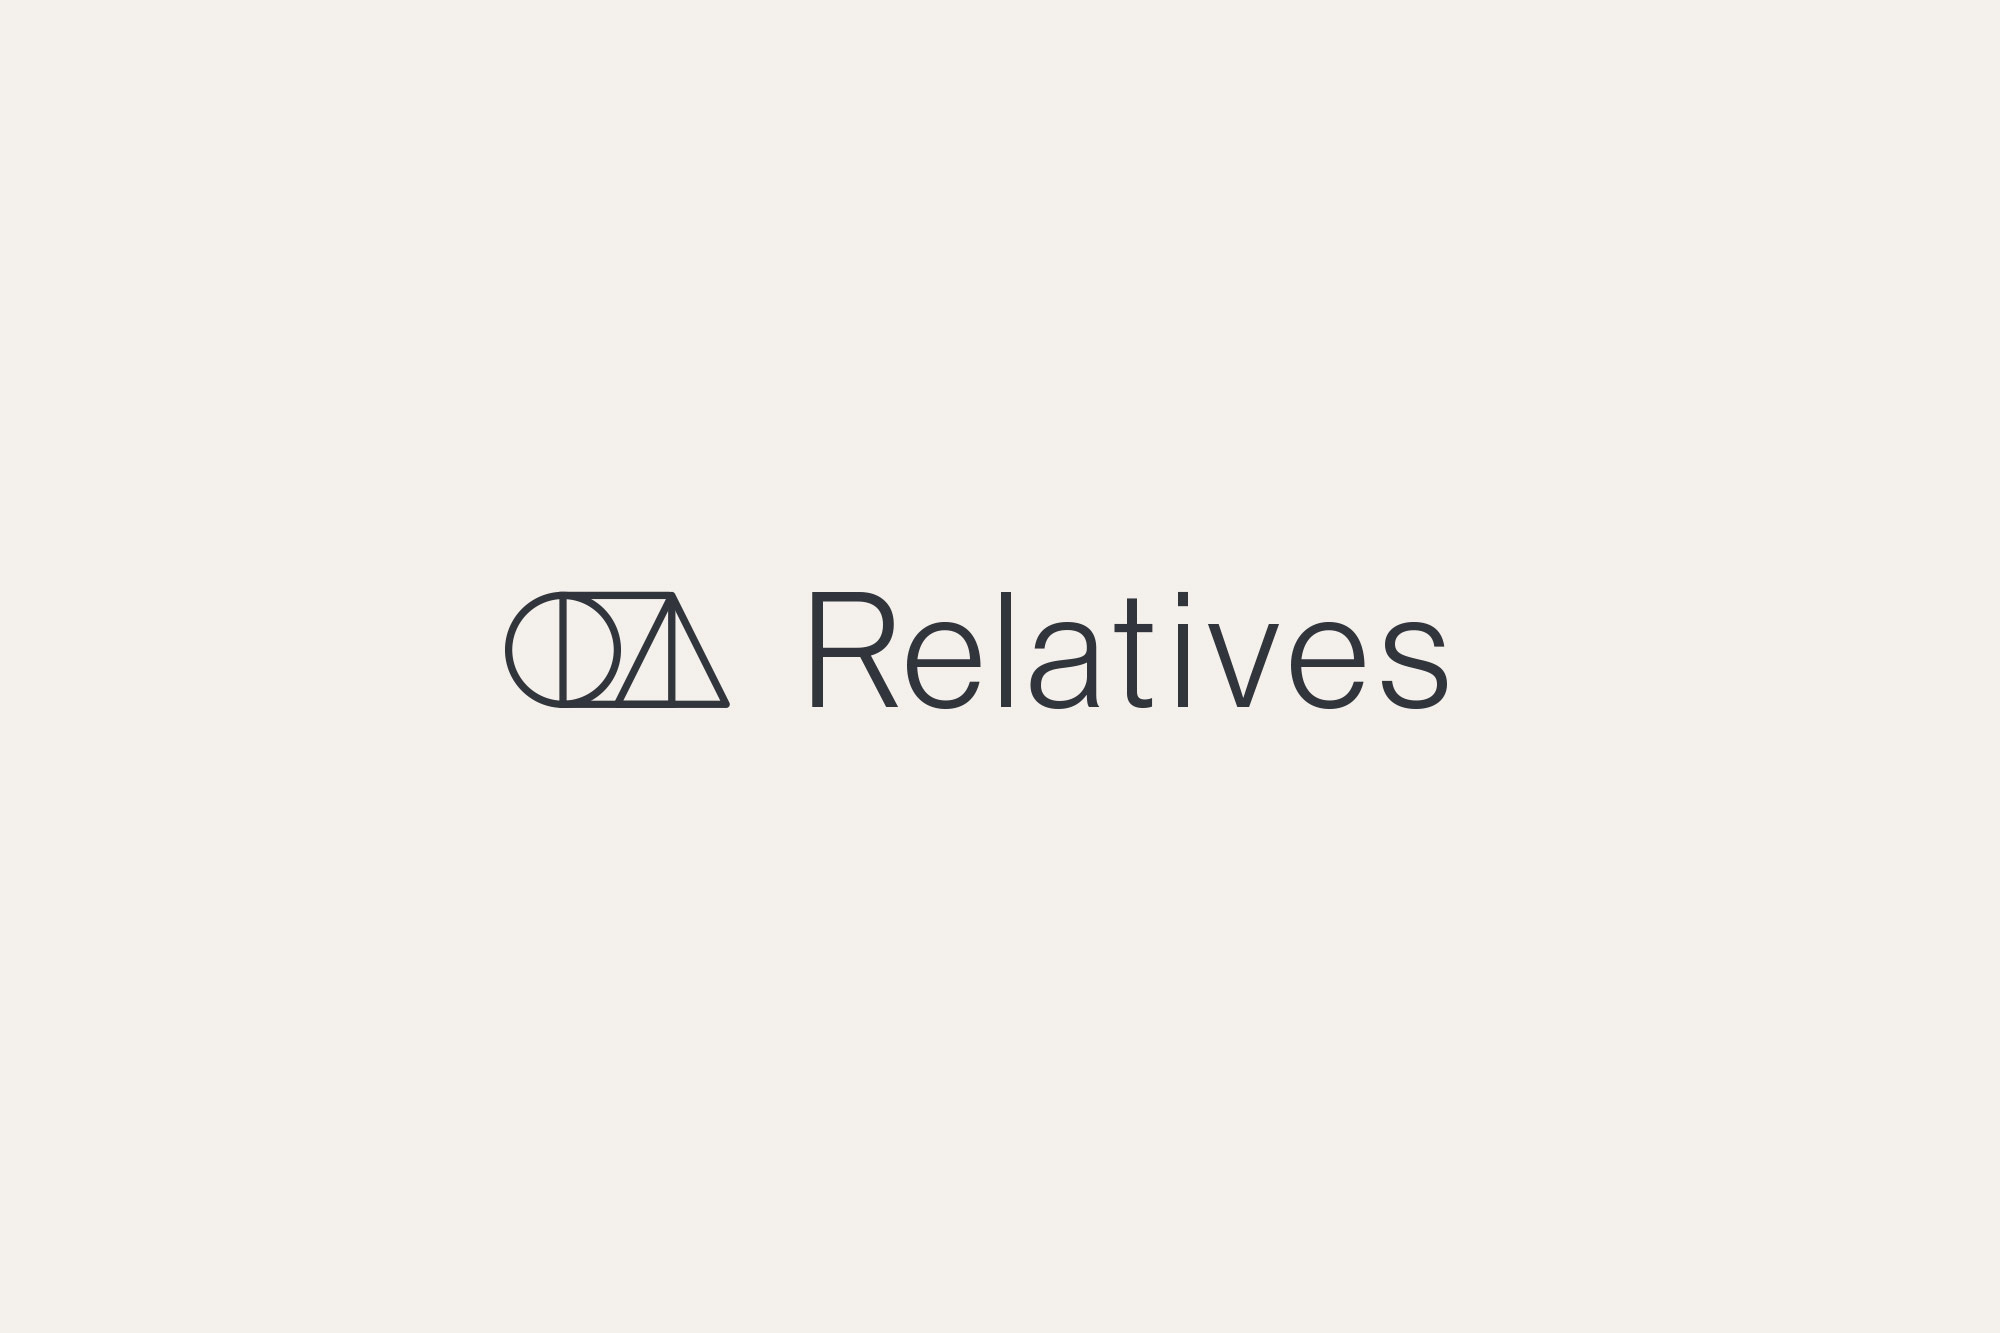 Relatives Logo